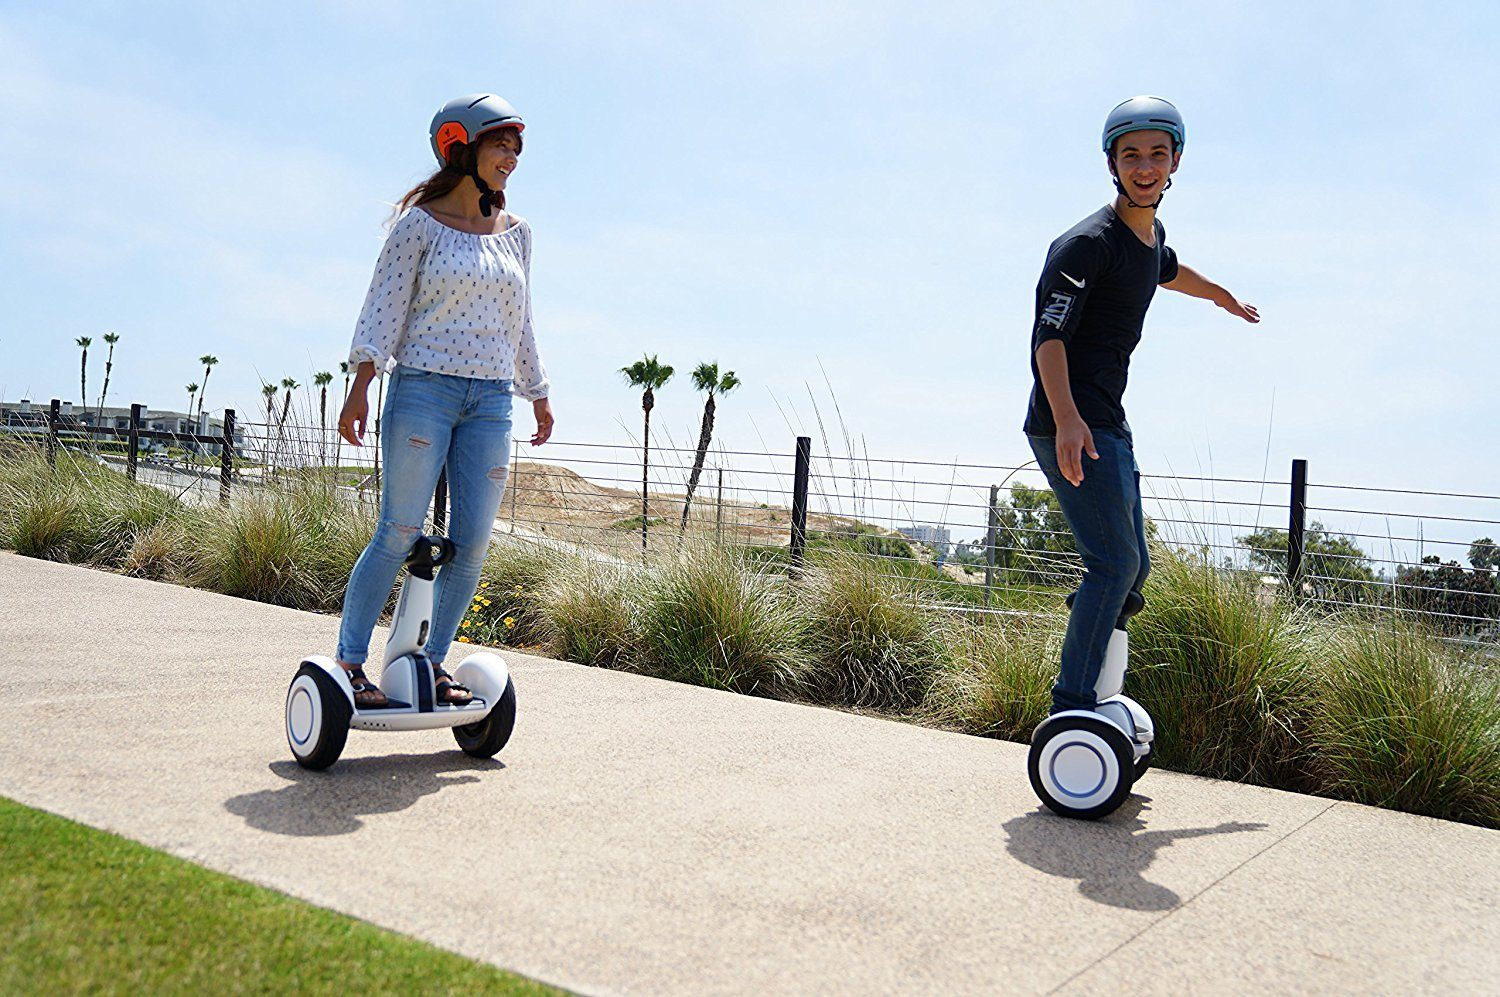 SEGWAY MINI PLUS VS SEGWAY MINI PRO COMPARISON